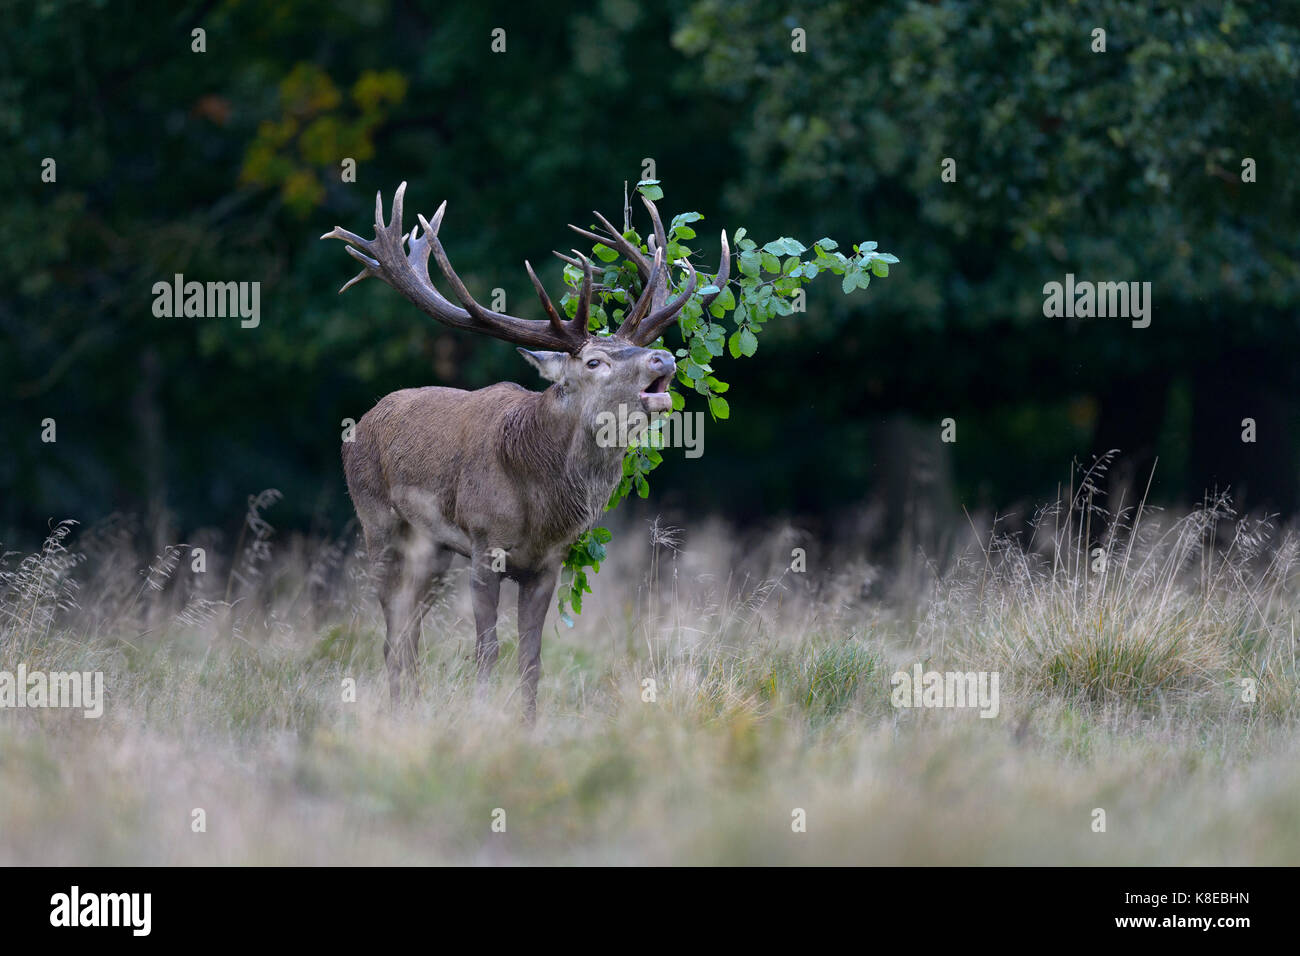 Red deer (Cervus elaphus), roaring, capital stag with foliage in the antler, Imponierge, Platzhirsch, Zealand, Denmark - Stock Image